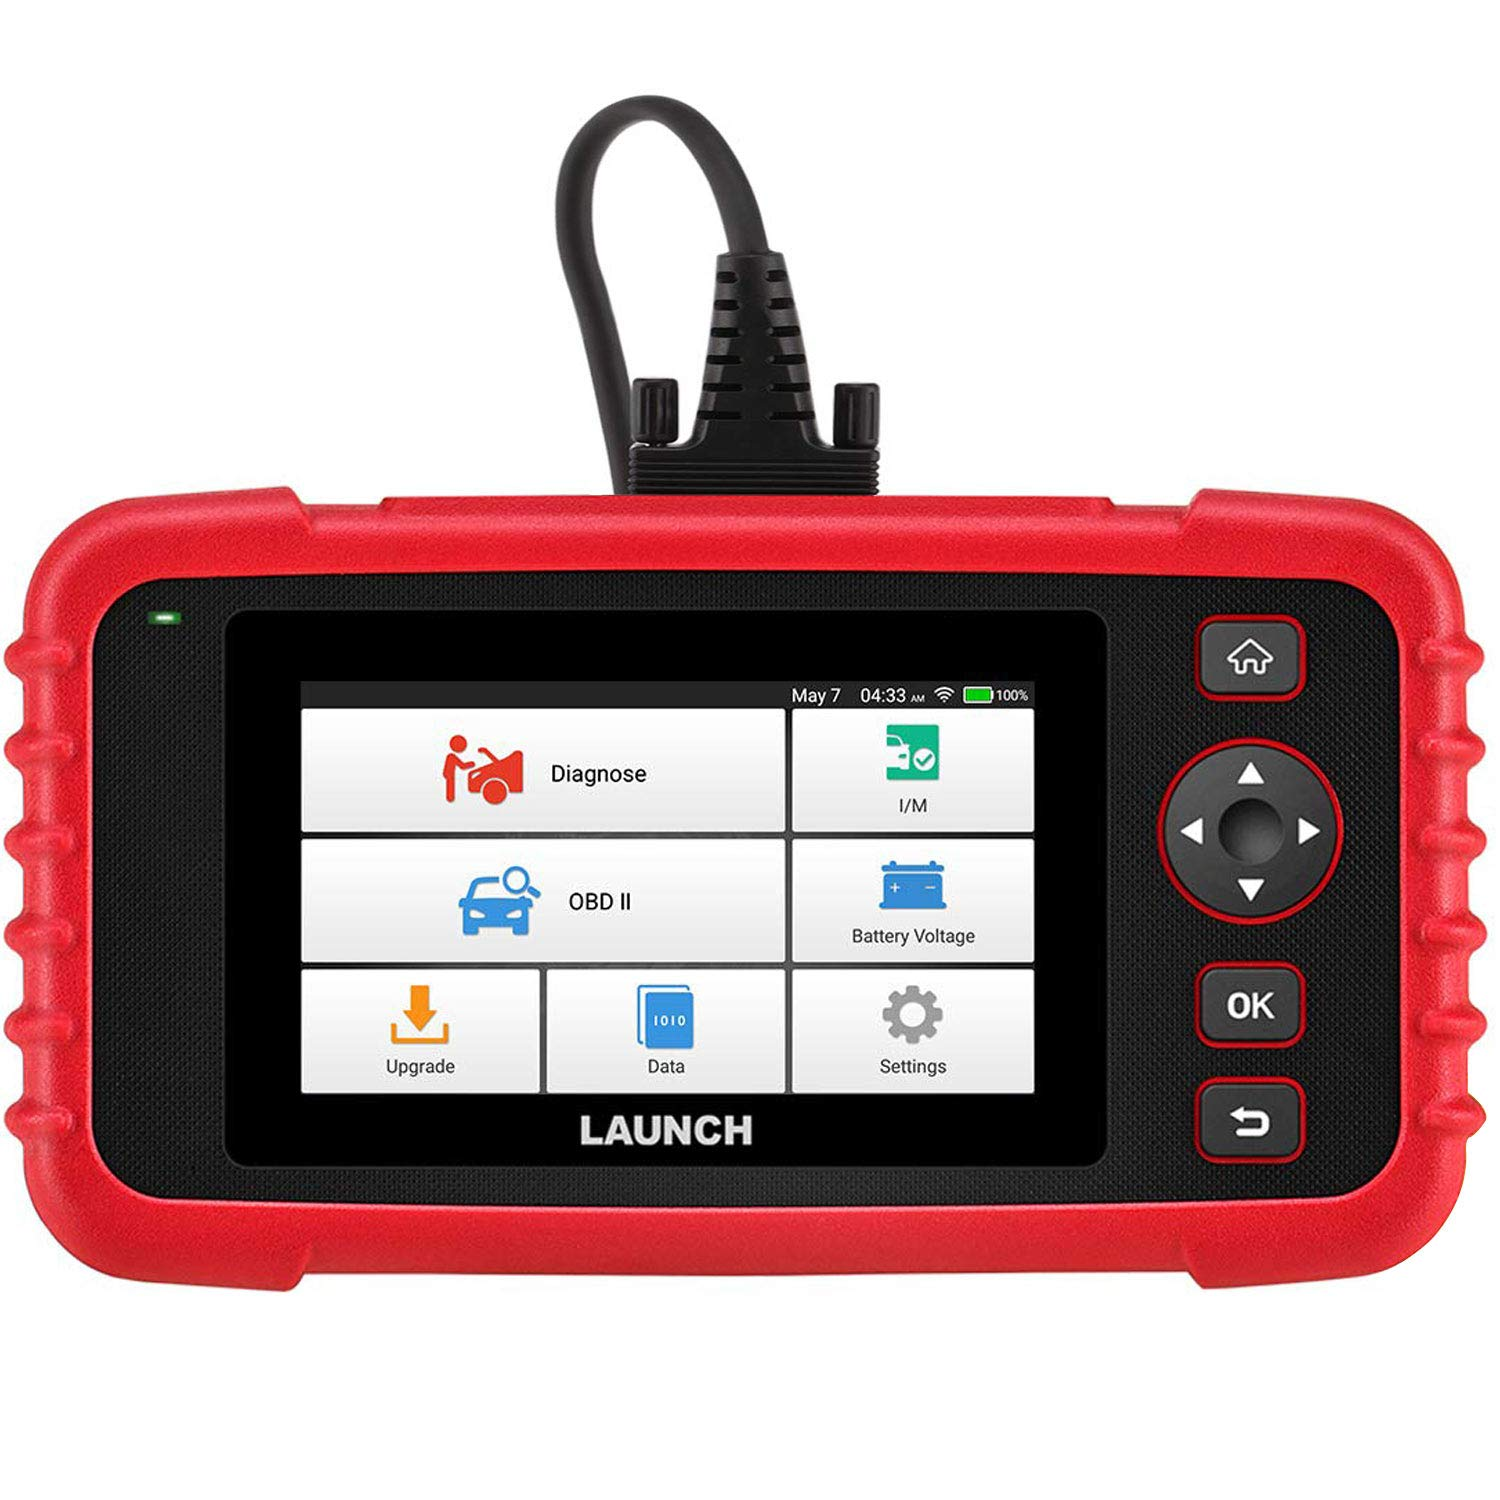 LAUNCH Transmission Diagnostic 7 0 Based Touchscreen